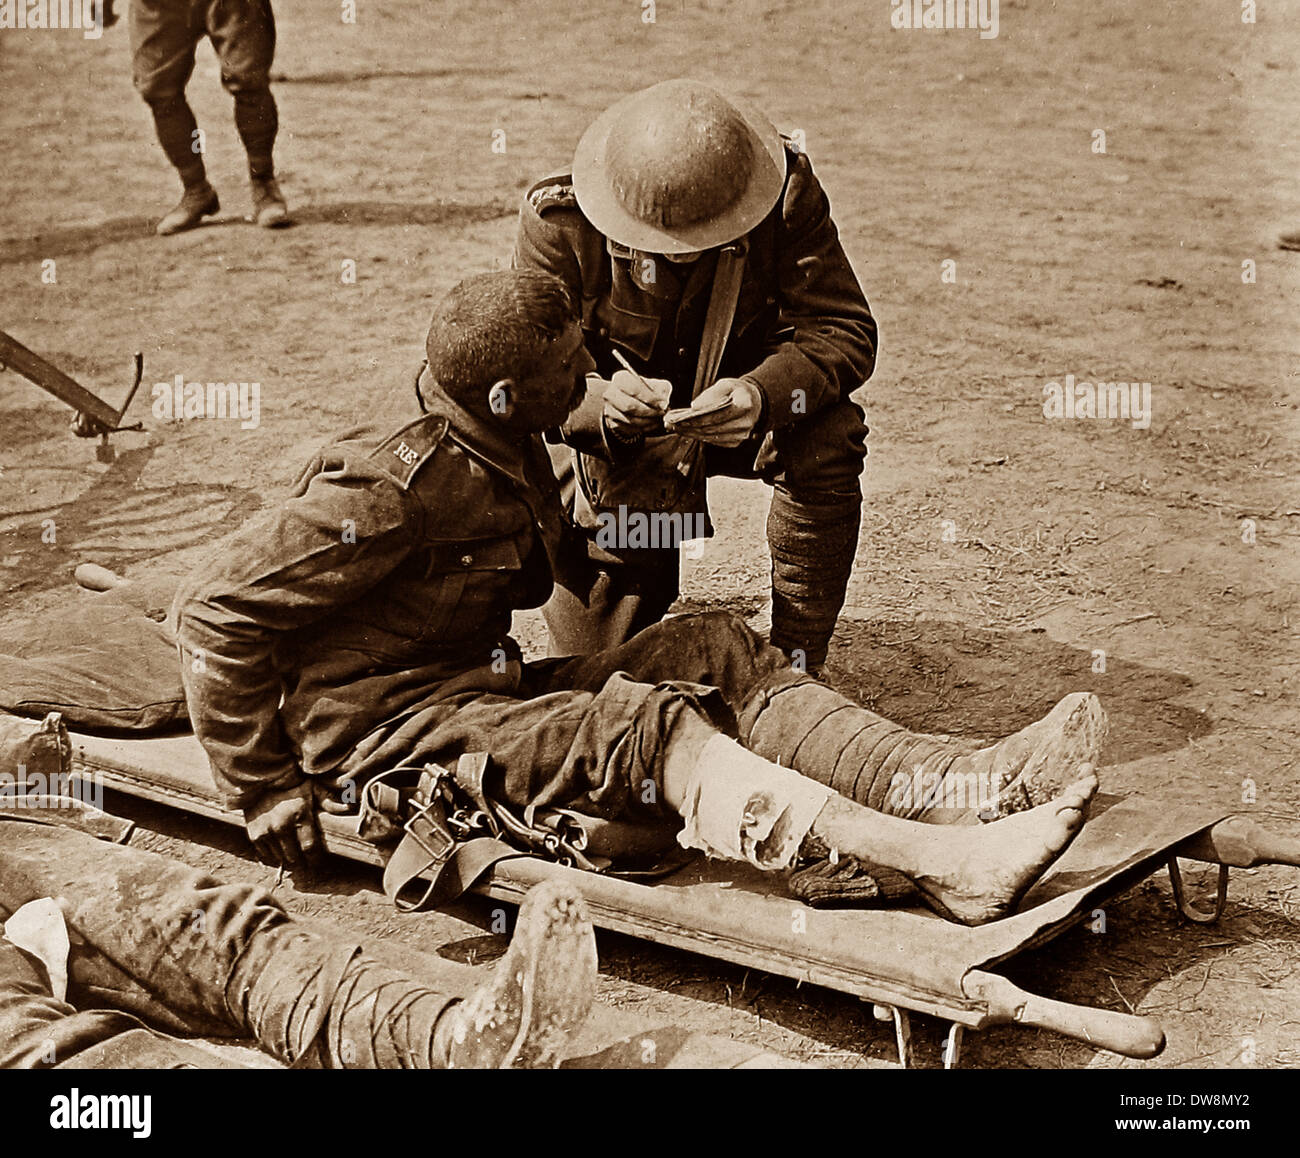 WW1 Chaplain with wounded soldier 1914 - 1918 - Stock Image